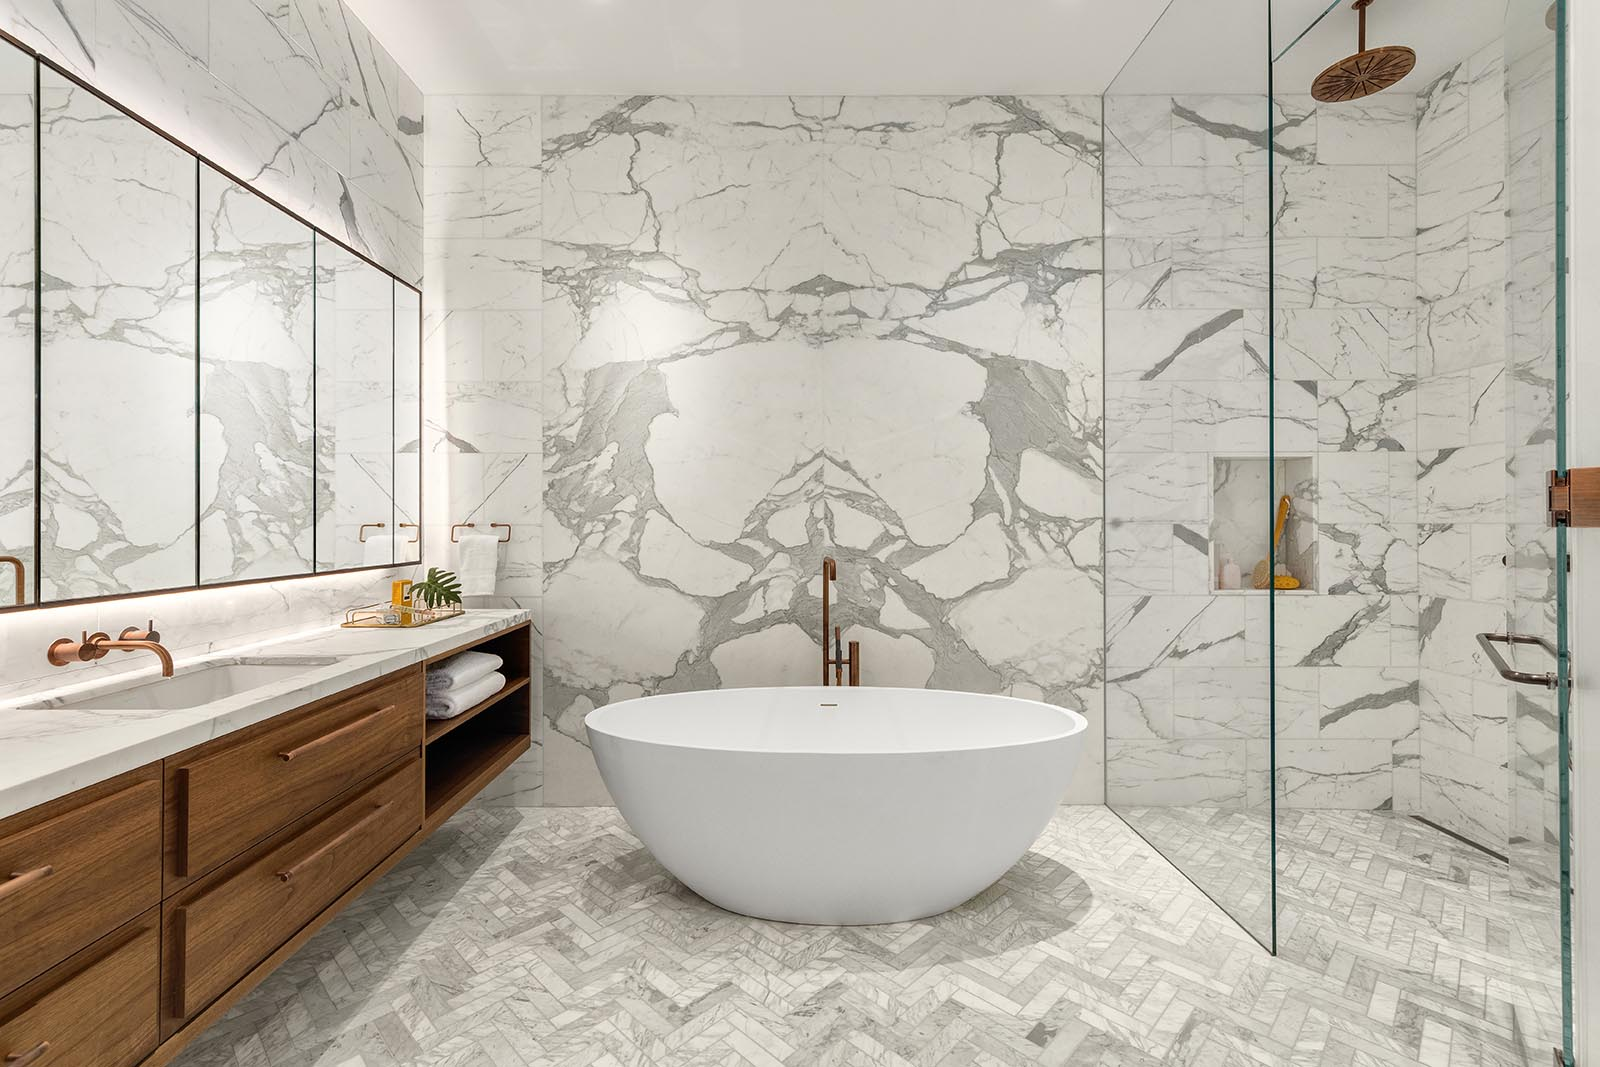 This modern master bathroom includes gray and white book-matched marble slabs on the walls, a floating wood vanity, a freestanding Badeloft bathtub, and a glass enclosed shower.